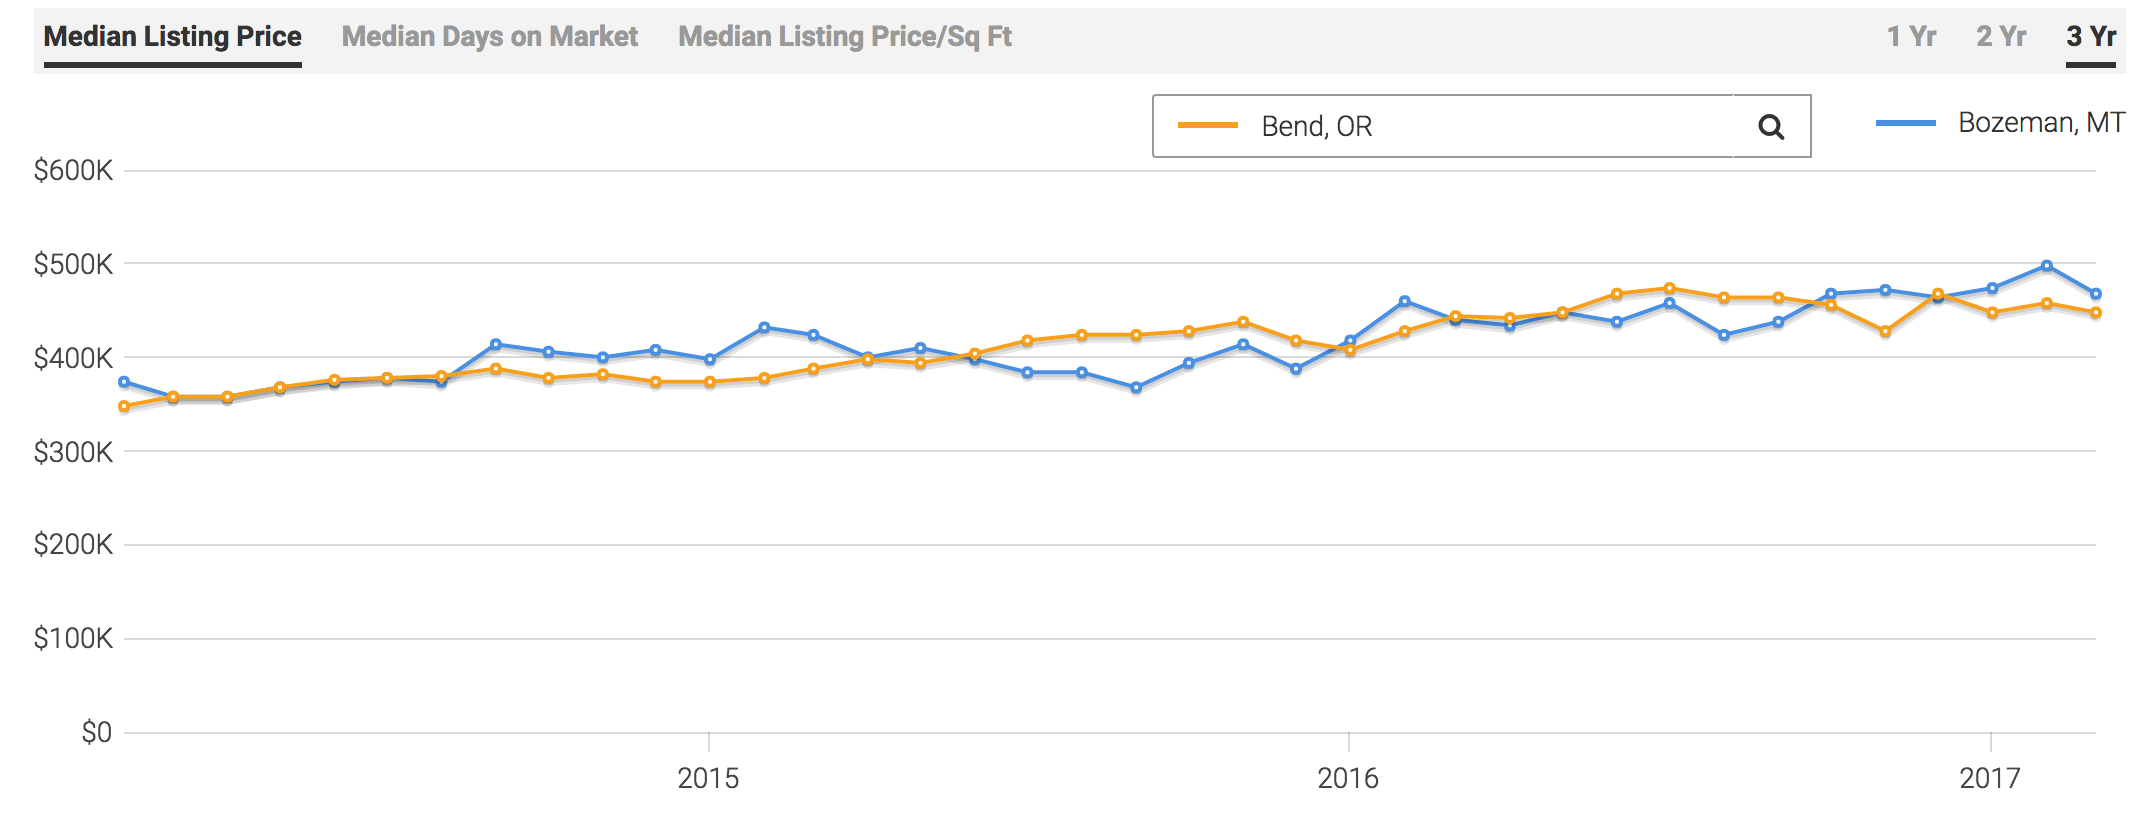 Bend Median List Price Compared to Bozeman